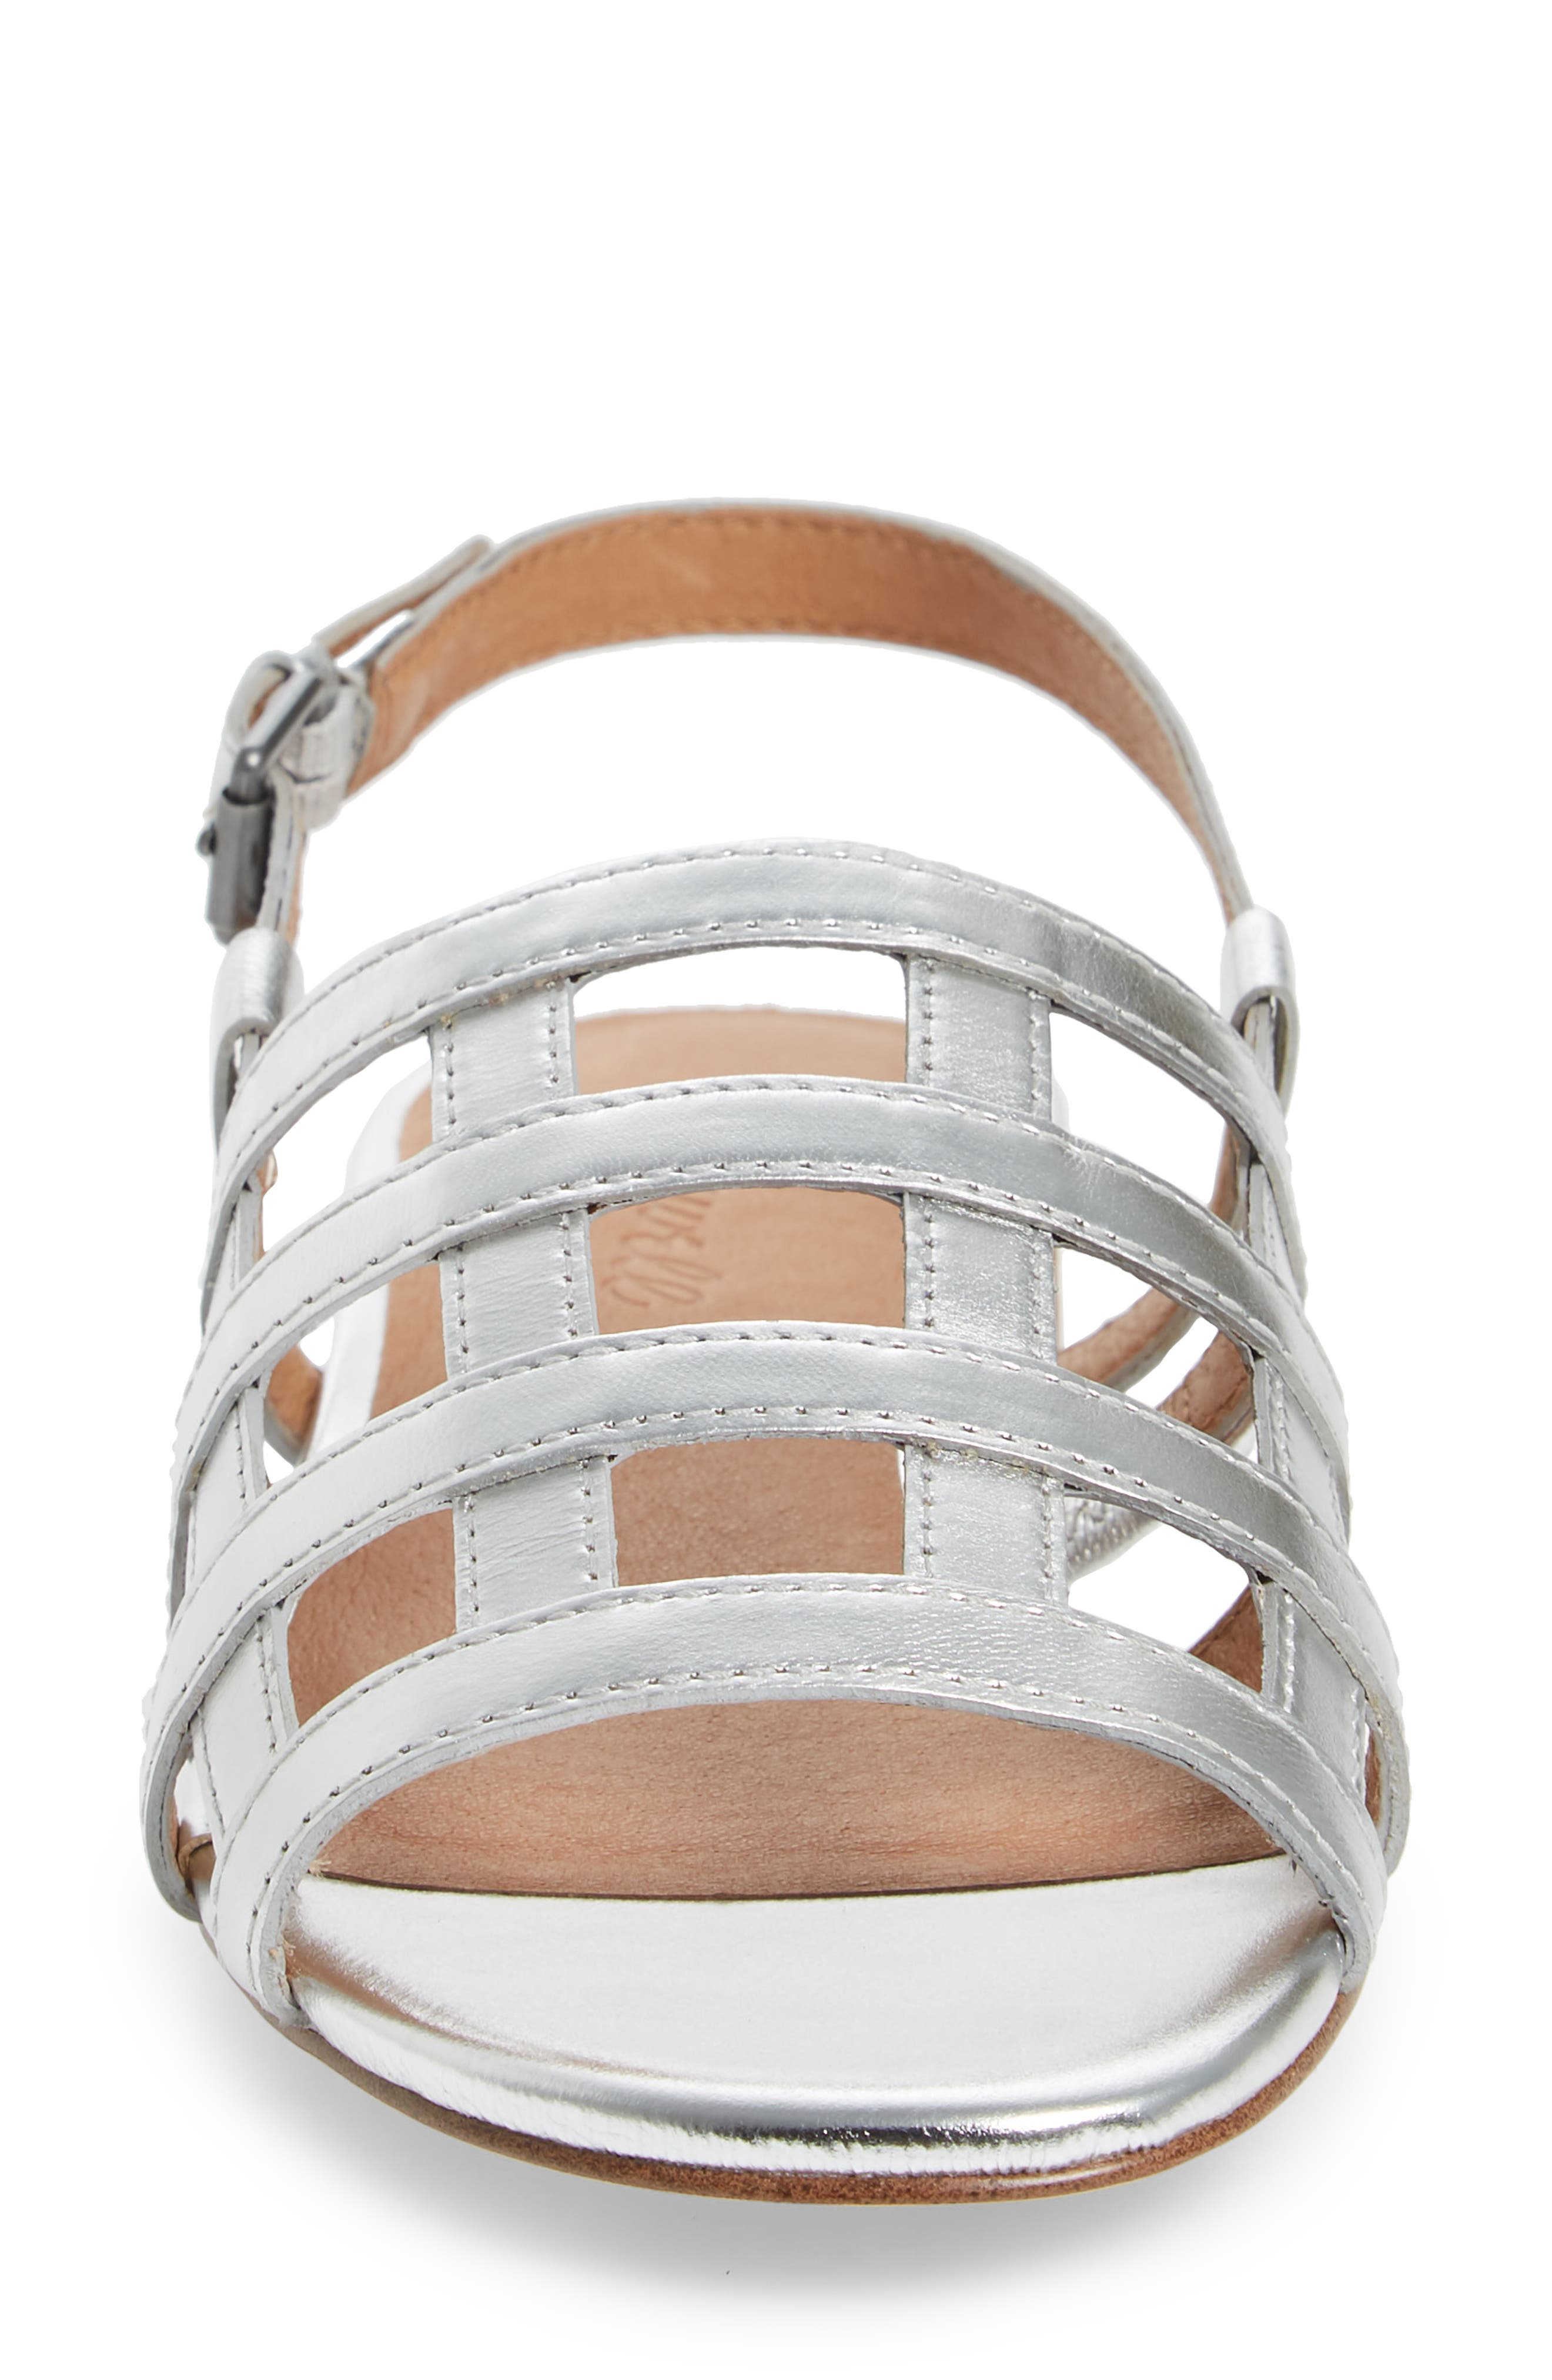 Rowan Cage Sandal,                             Alternate thumbnail 4, color,                             040